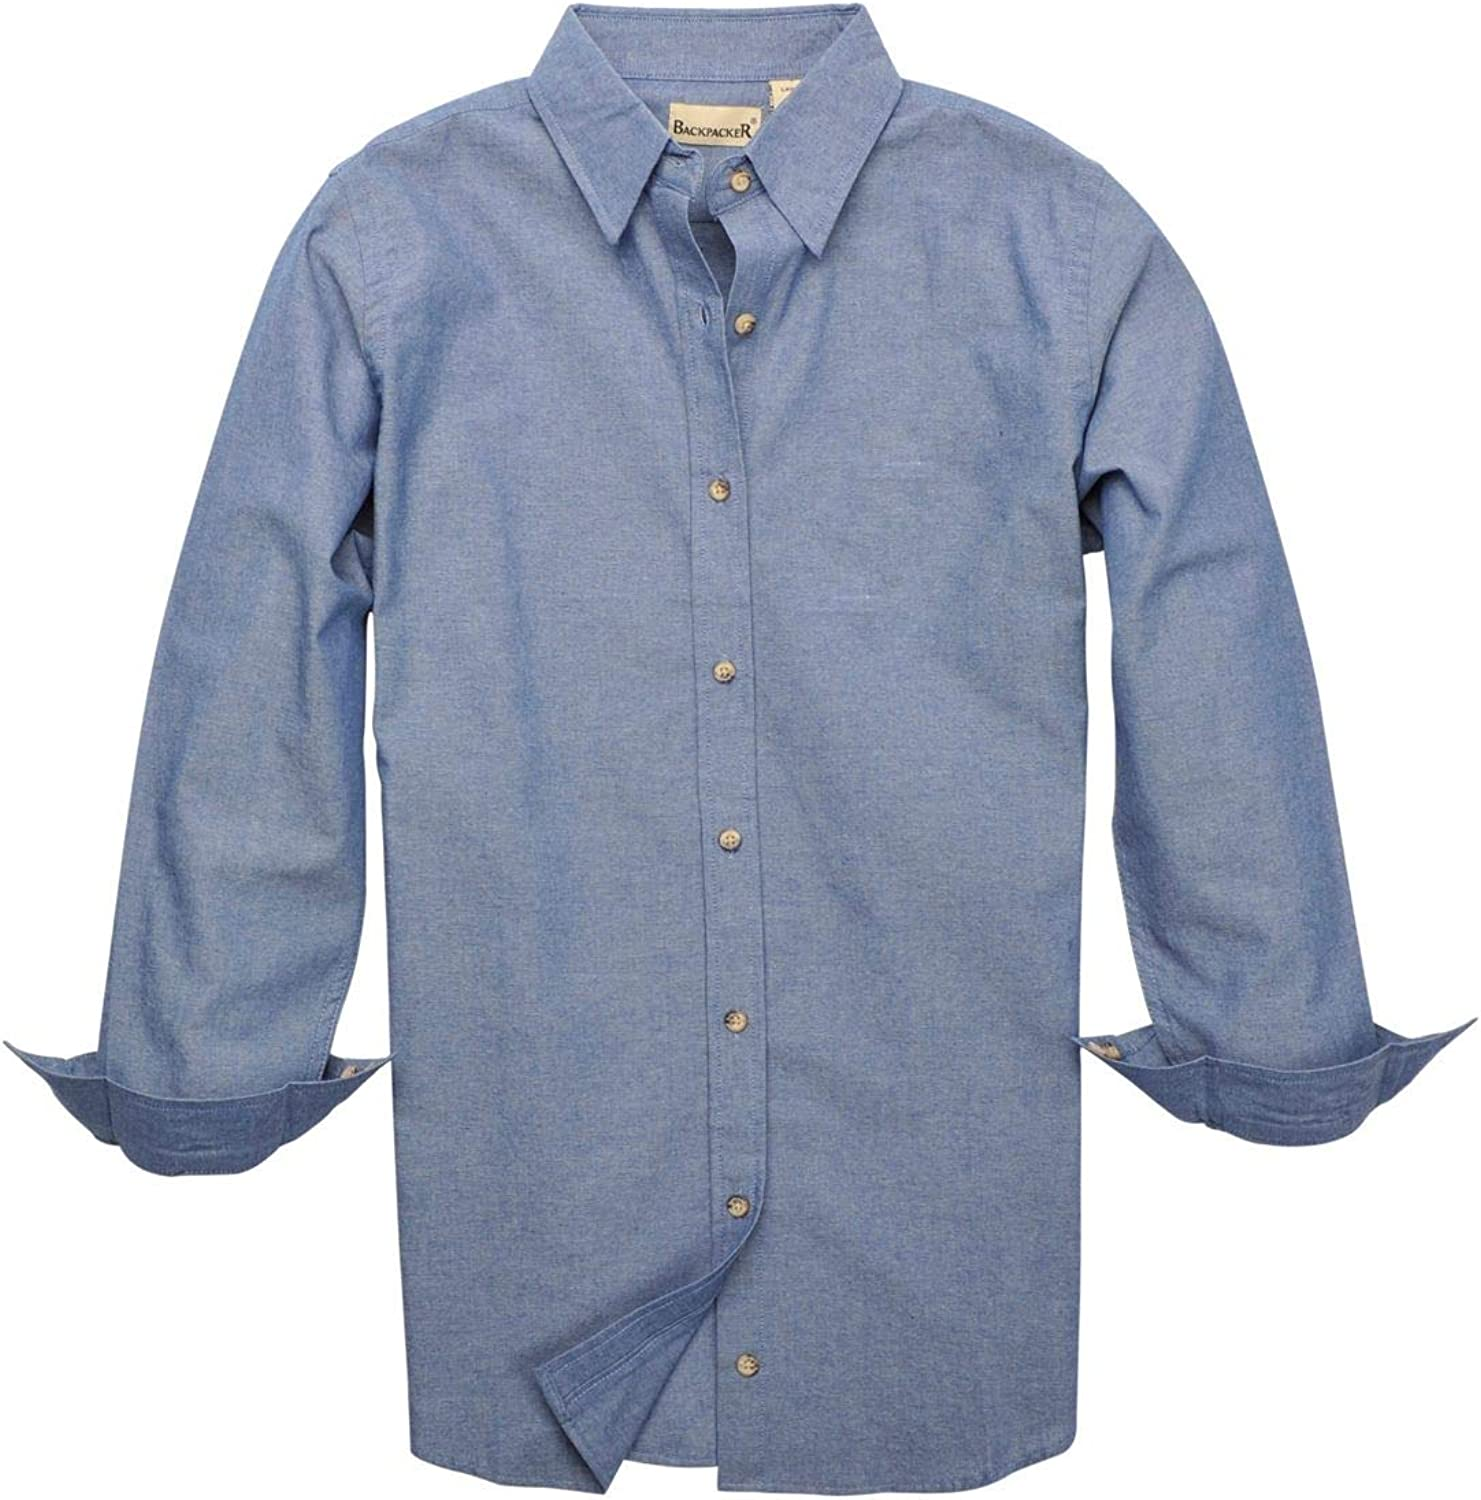 Backpacker Women's Chambray: Clothing